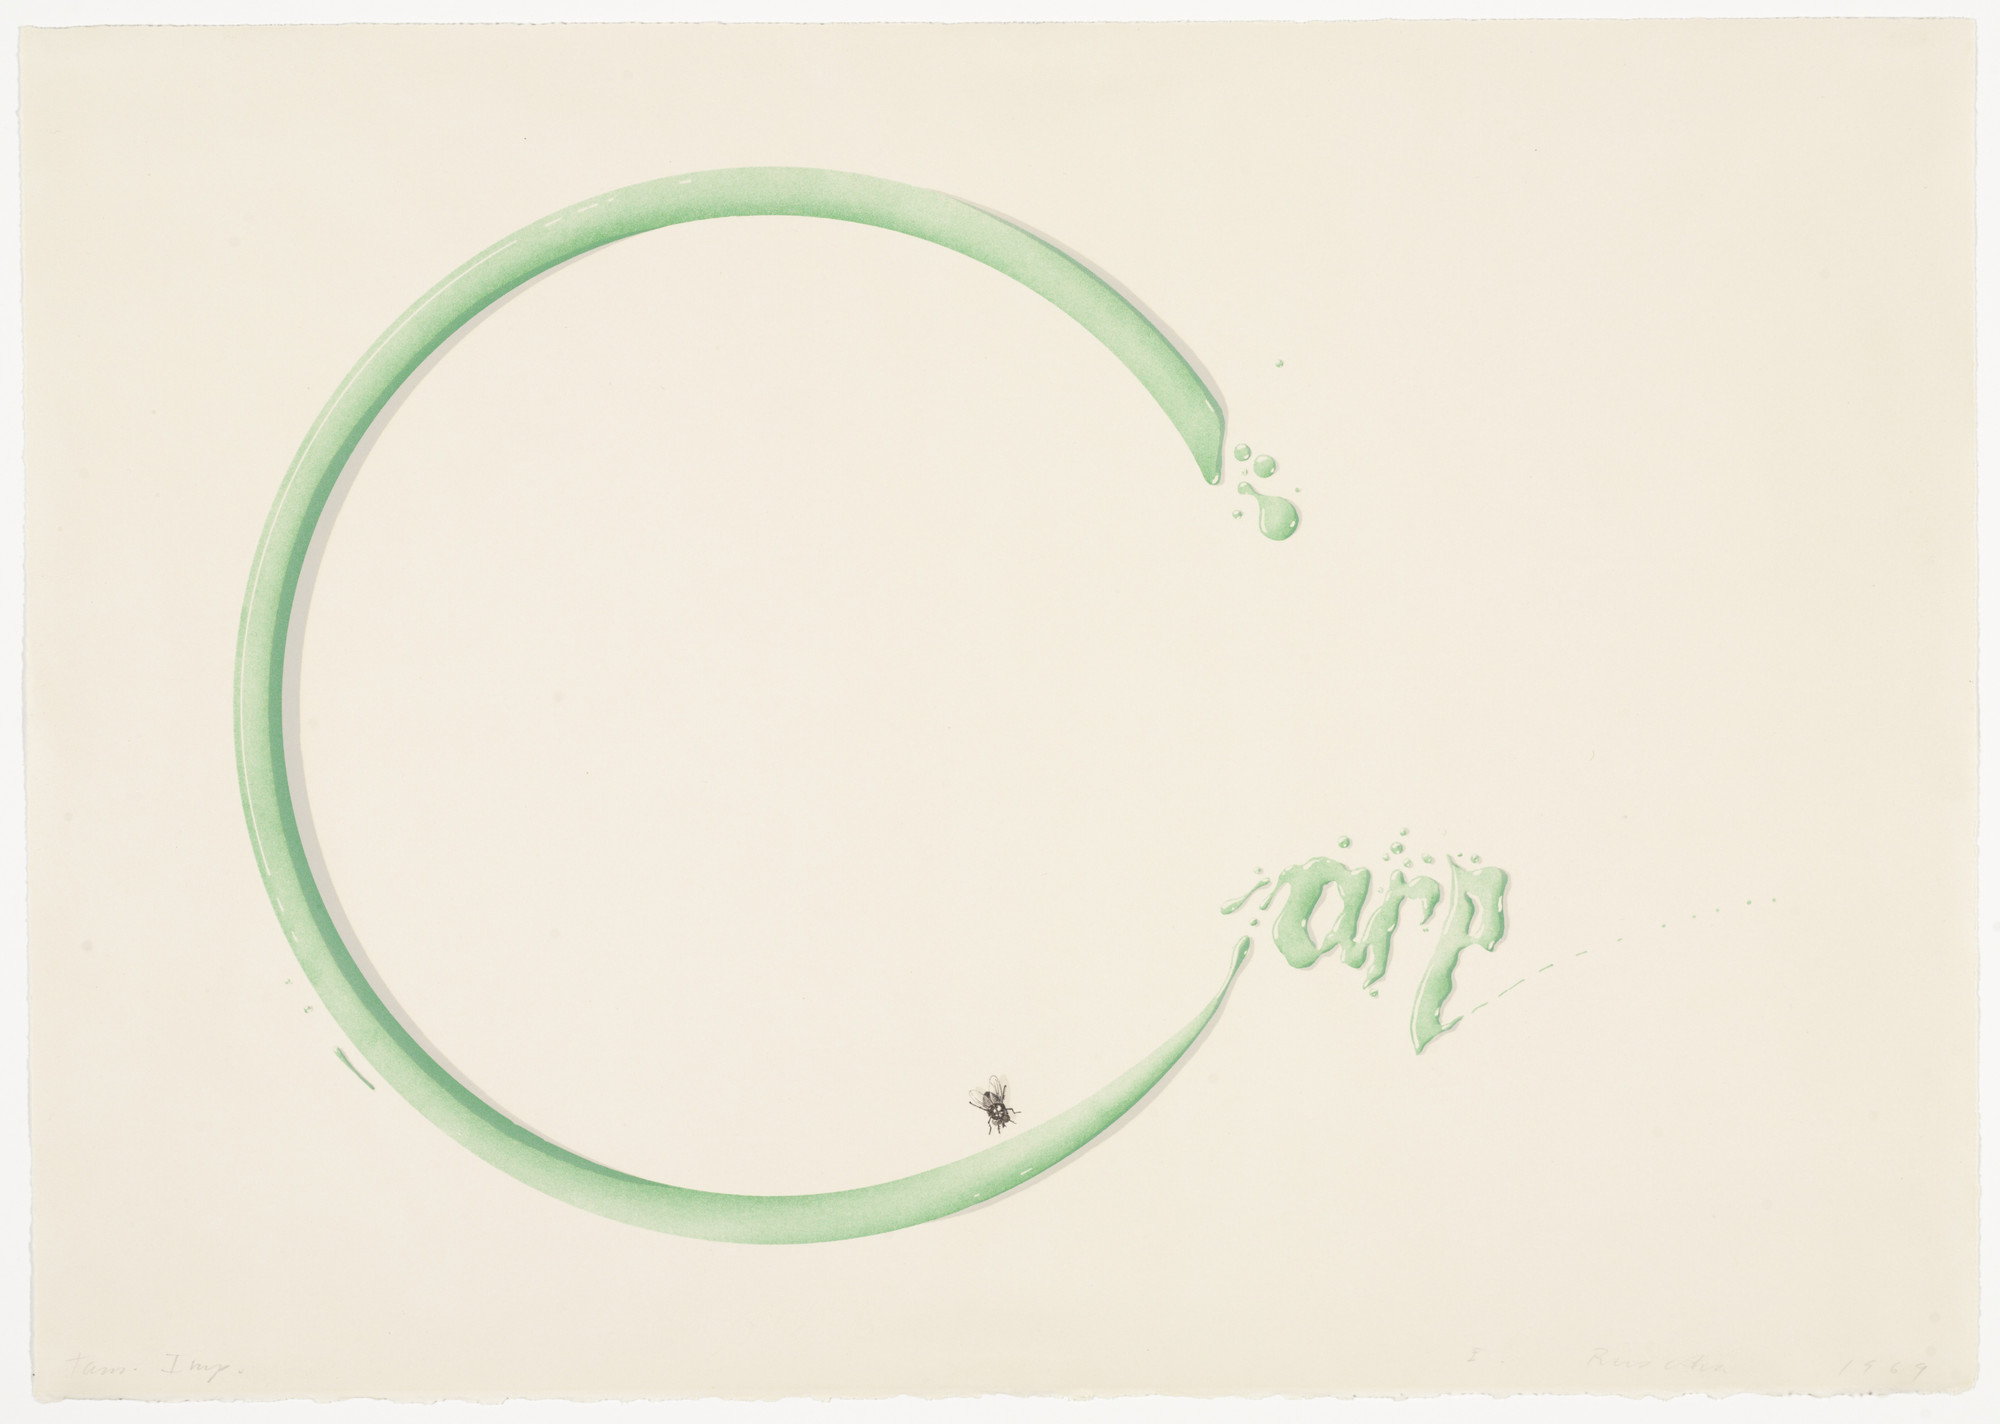 Edward Ruscha. Carp with Shadow and Fly. (January 14-23) 1969